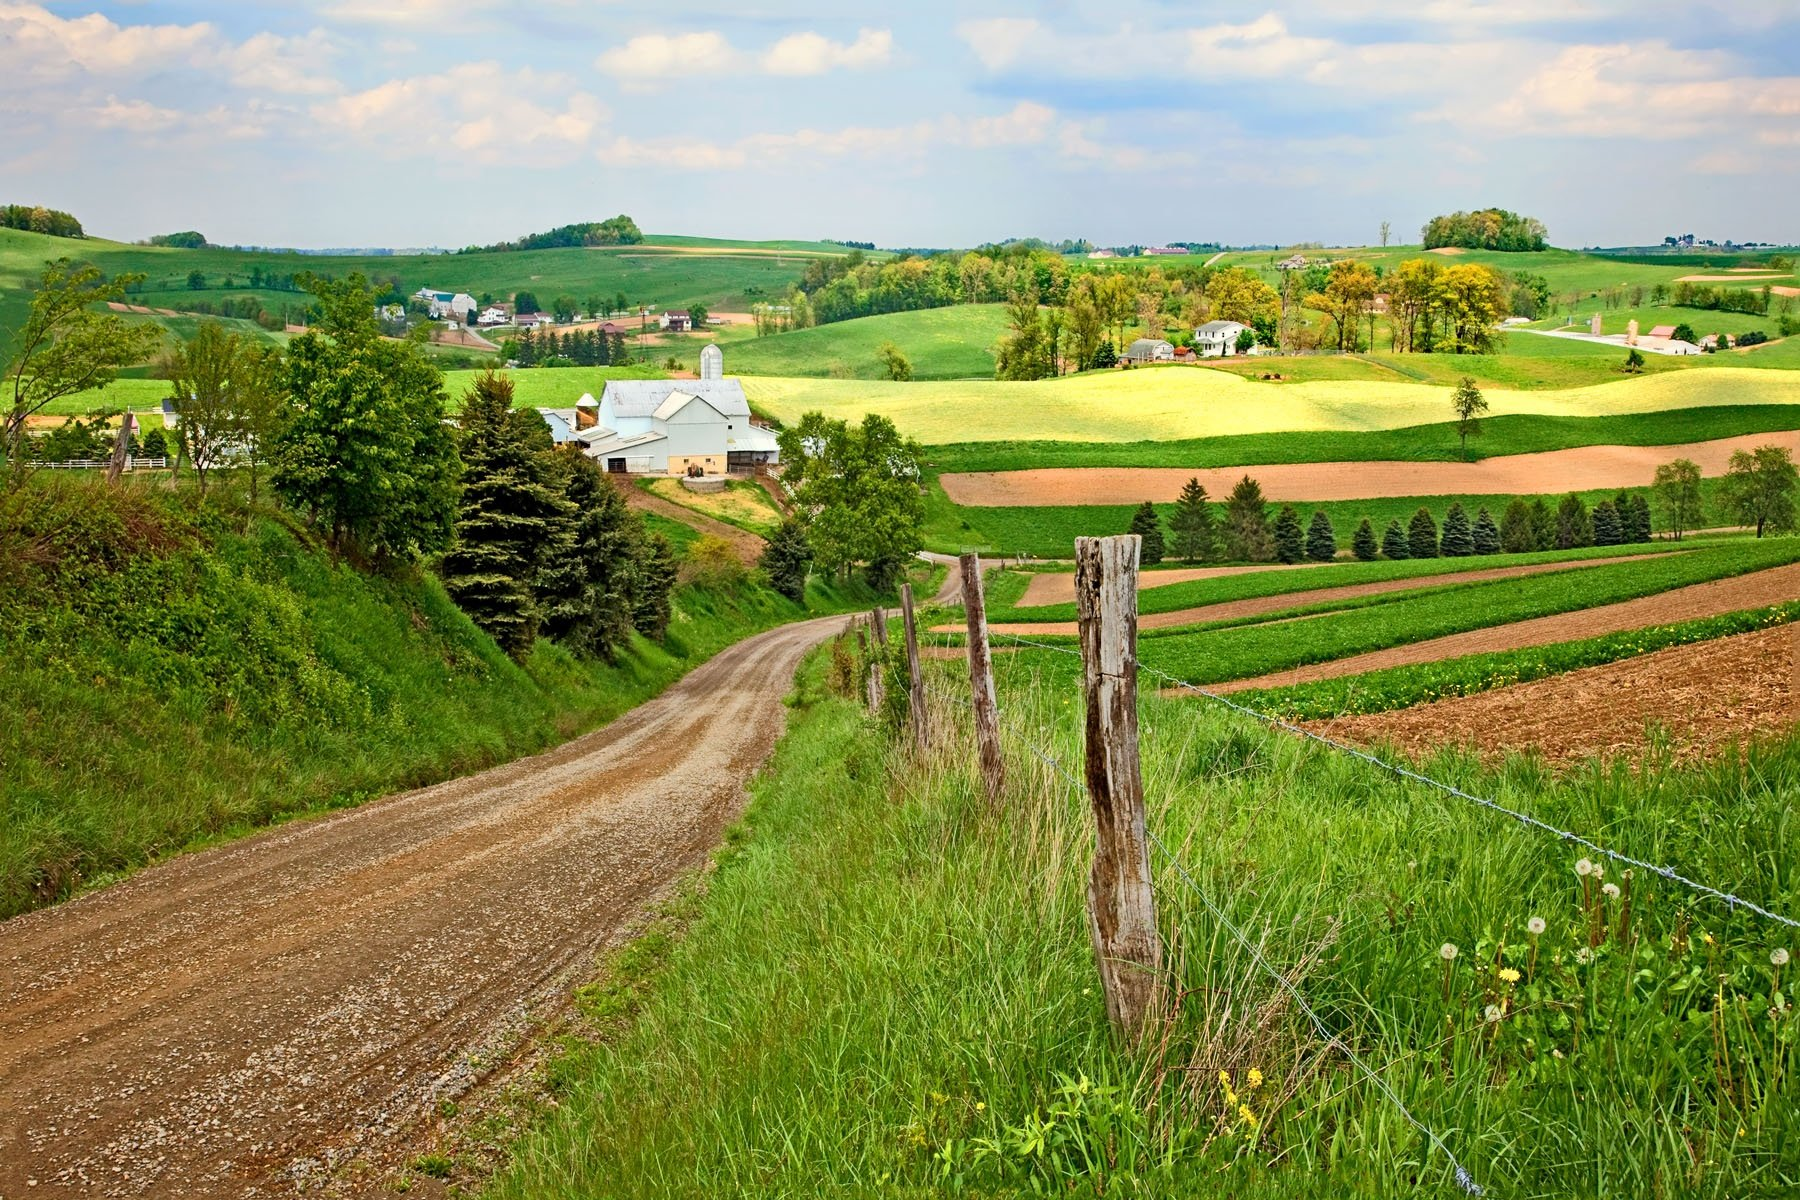 VALLEY VIEW - What a beautiful country we live in. This photo was taken in Holmes County in central Ohio.